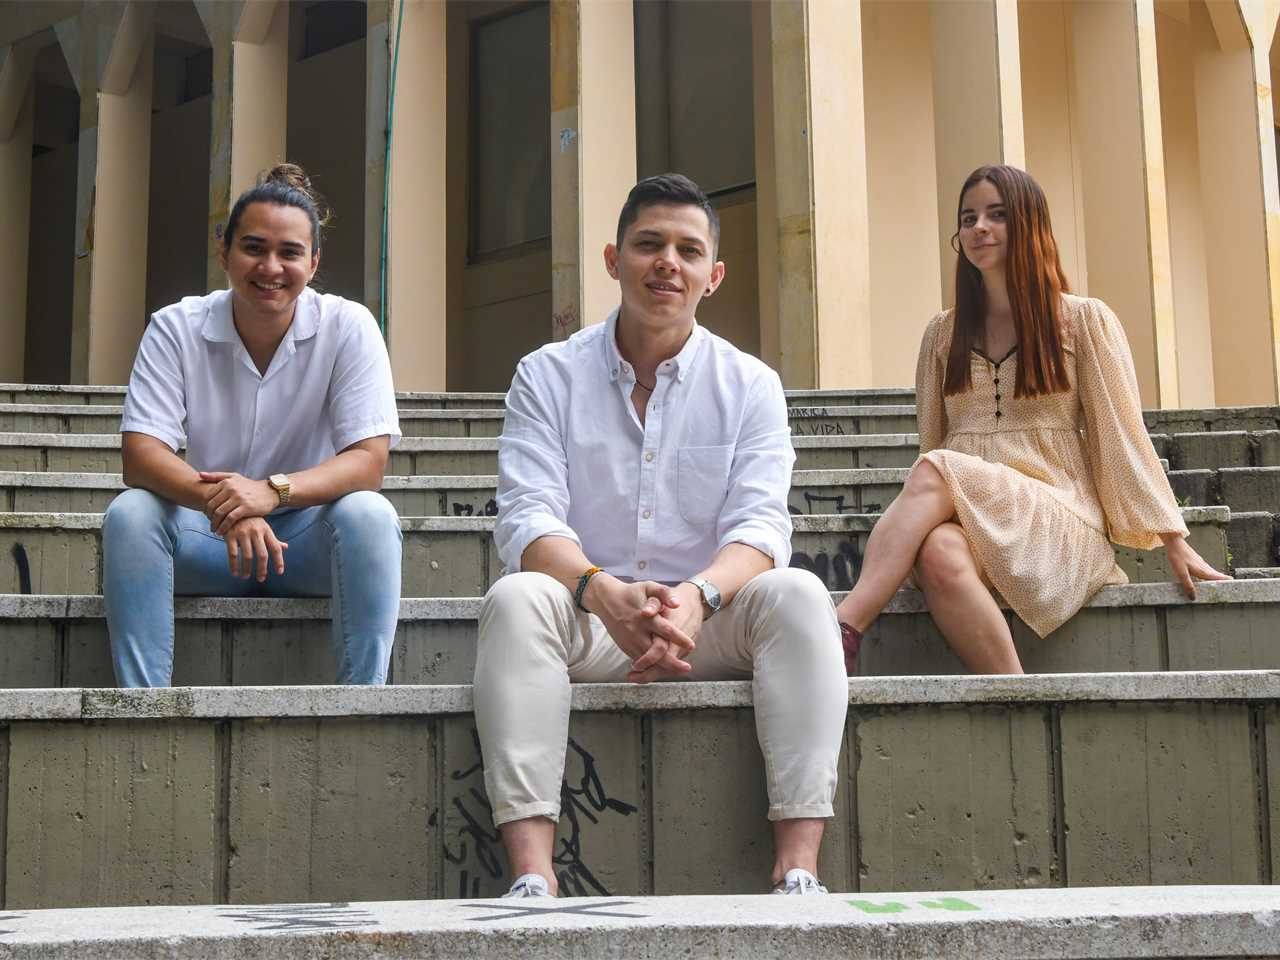 Next Generation 4th prize for Latin America